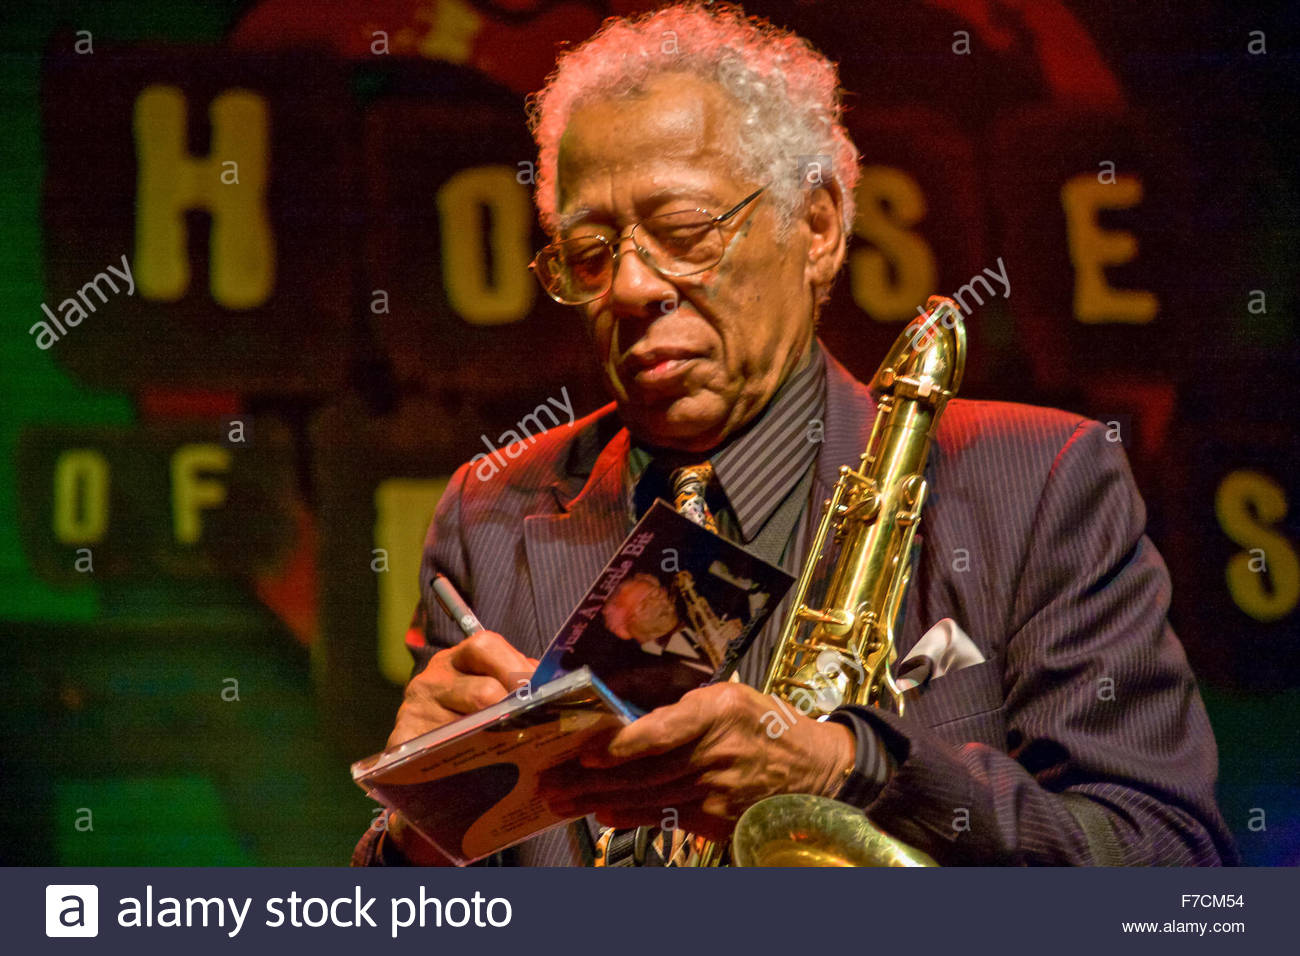 Musician Herbert Hardesty, performing at the House of Blues on January 27, 2007 in New Orleans, Louisiana, USA - Stock Image